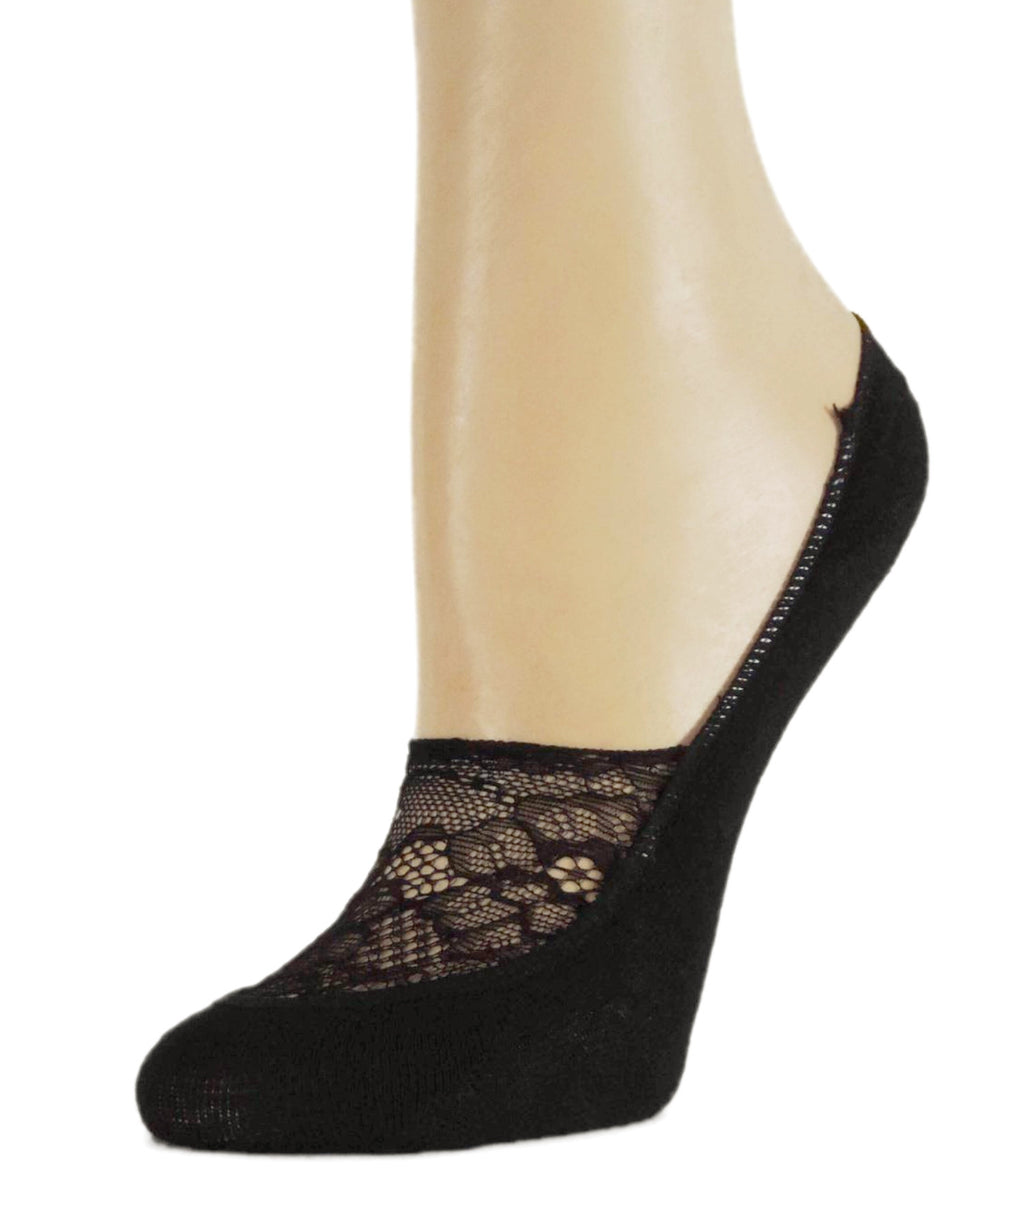 Classy Black Ankle Sheer Socks - Global Trendz Fashion®